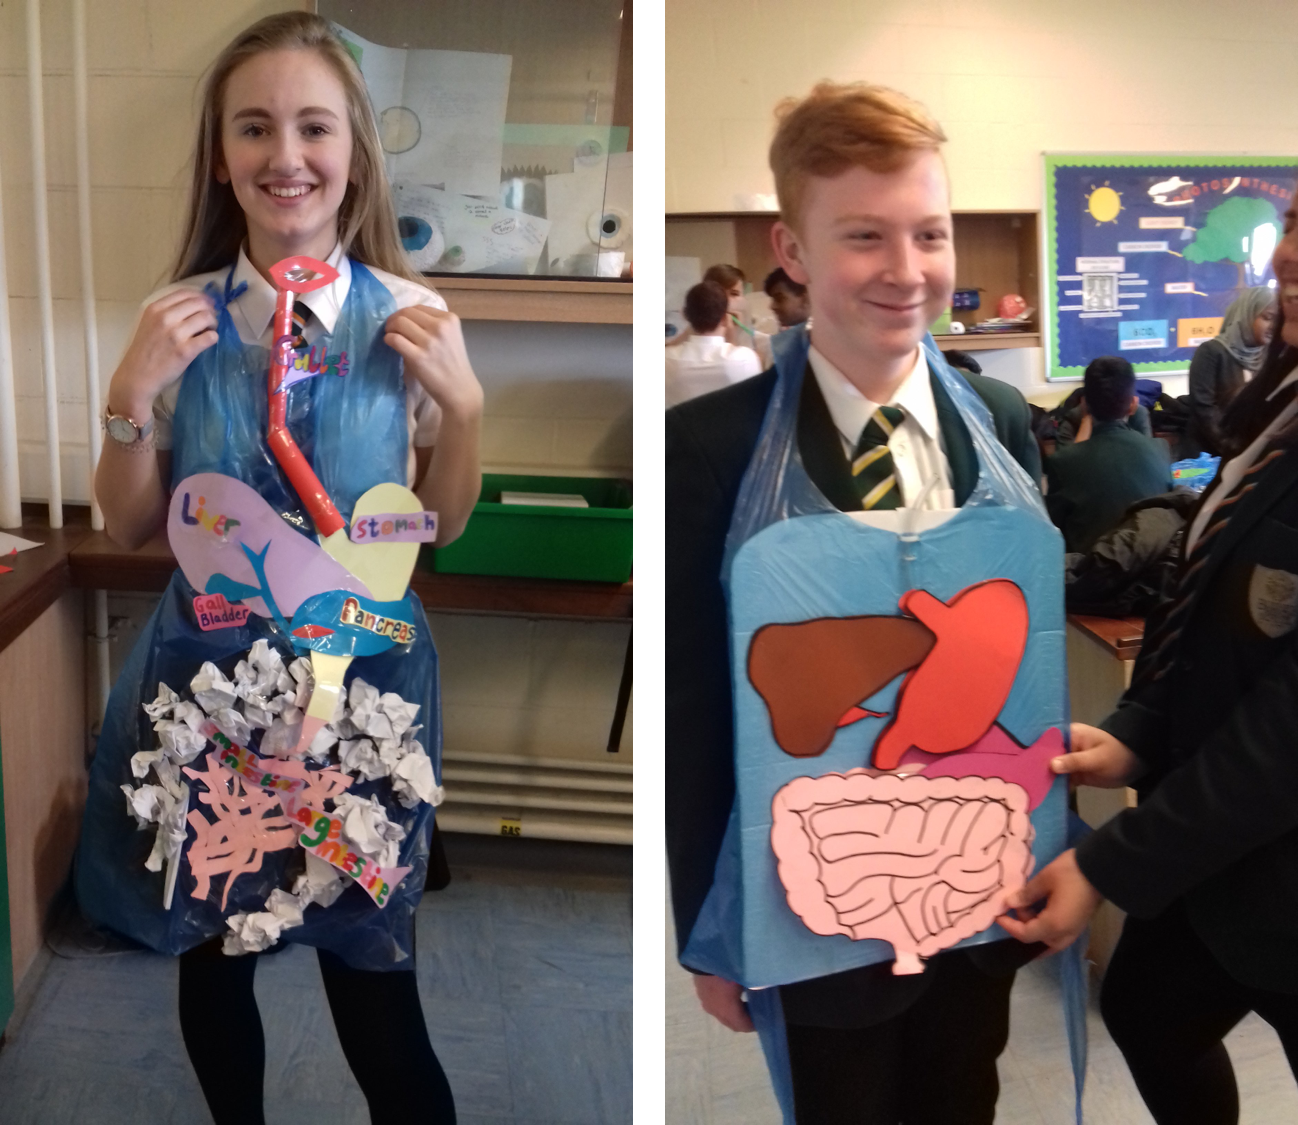 Fantastic digestive system models made by Year 9!